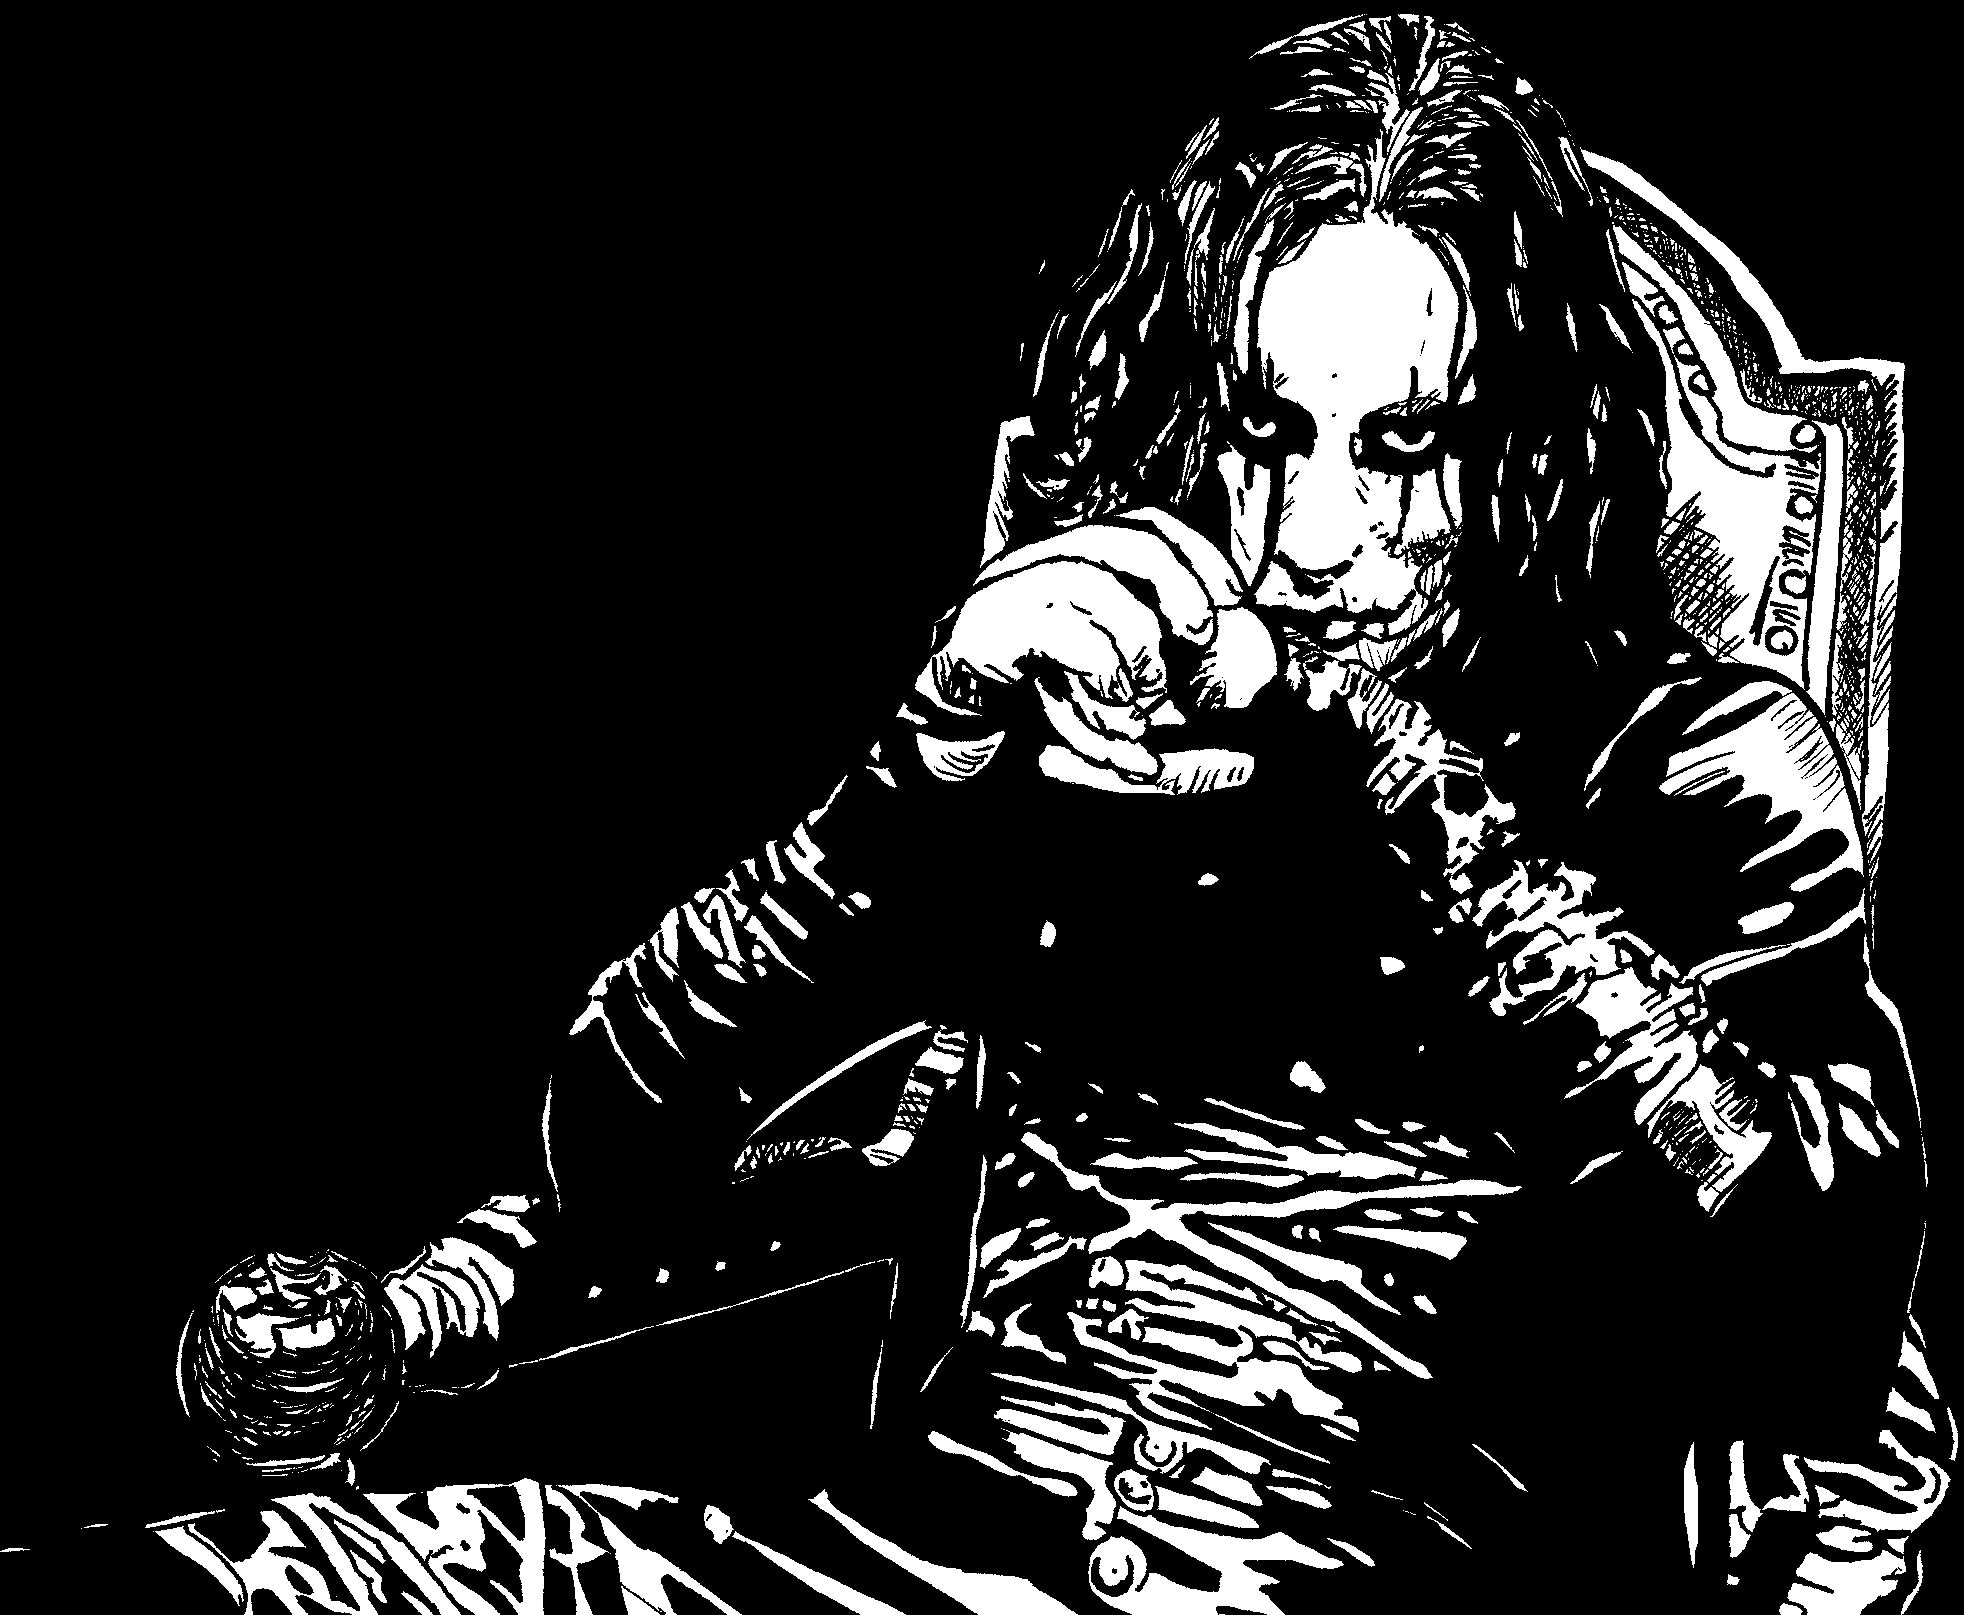 The Crow by ladyjart on DeviantArt